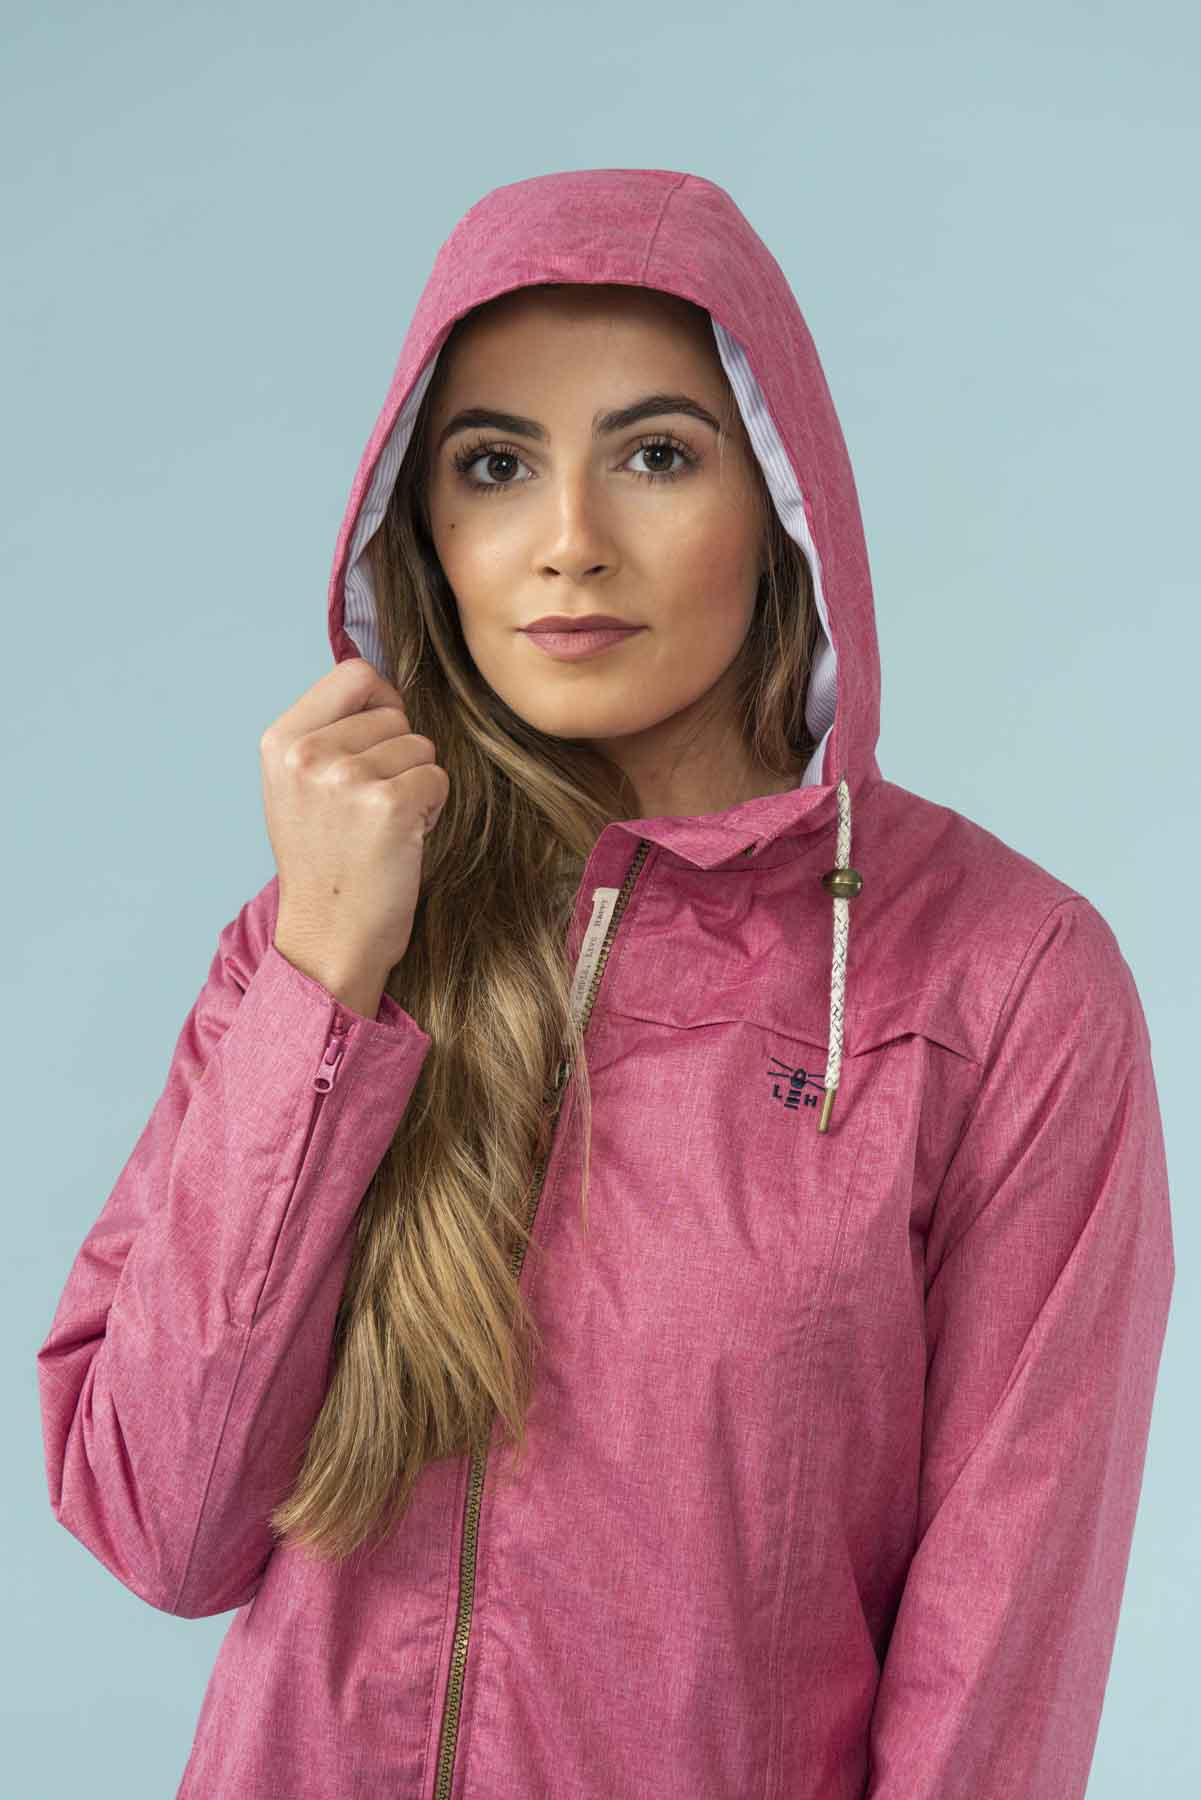 Women's Coats - Cora - Pink Raincoat